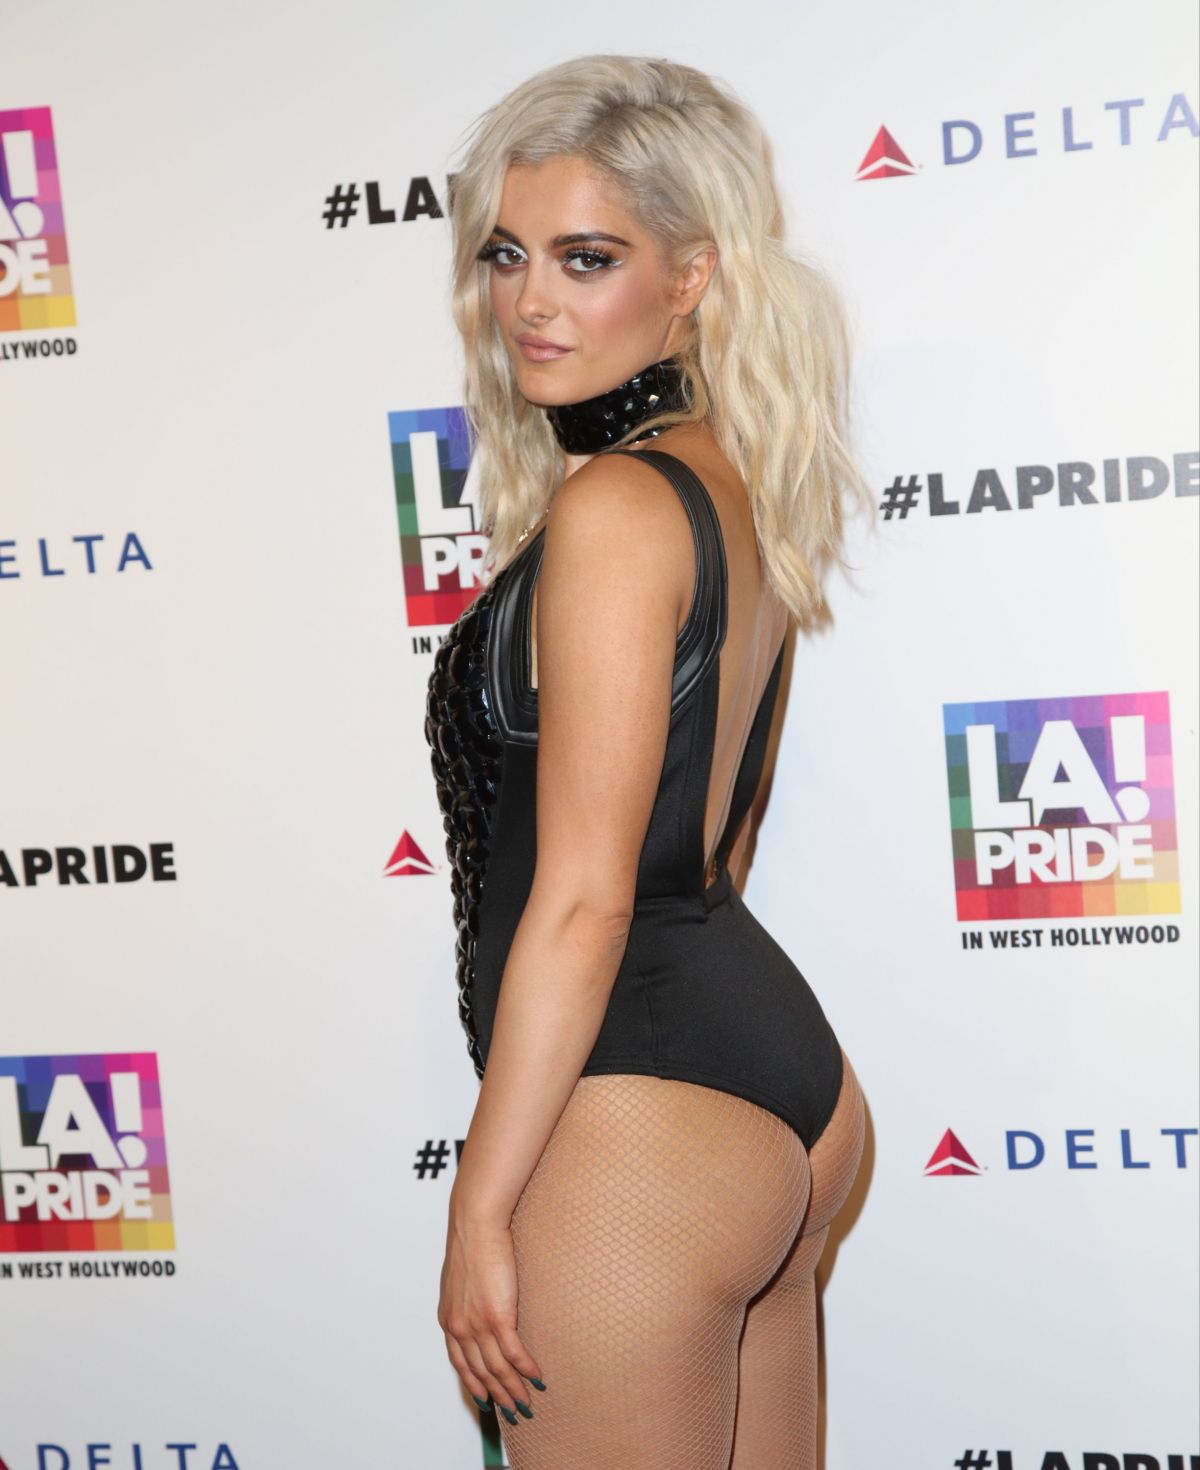 Celebrity Bebe Rexha nudes (55 photo), Sexy, Leaked, Feet, butt 2020